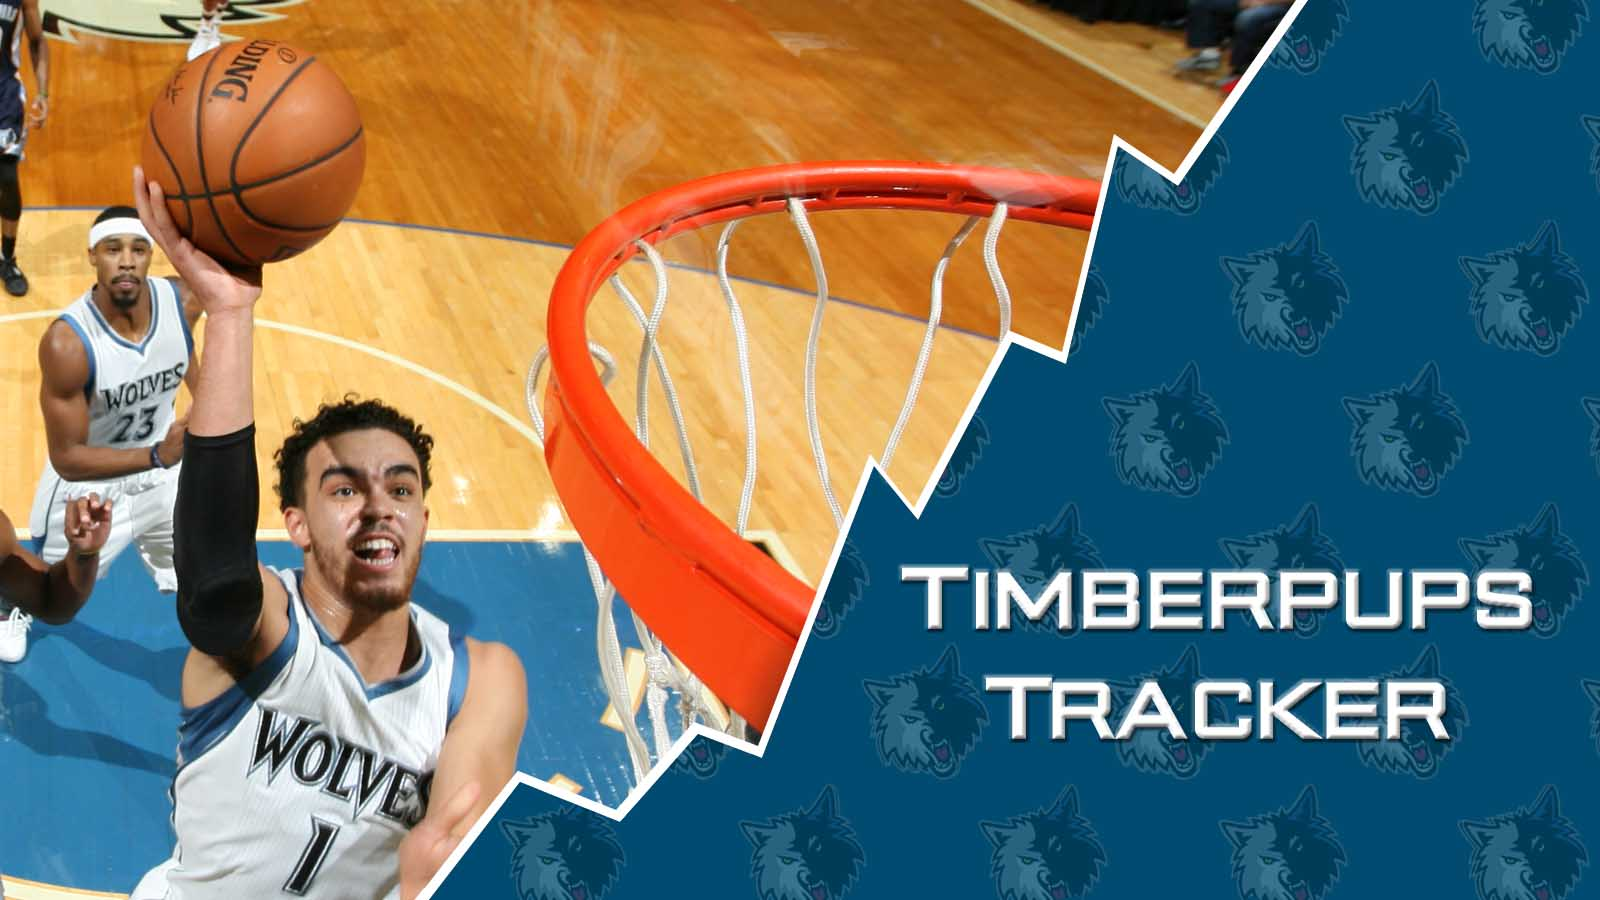 Timberpups Tracker: Jones getting an opportunity